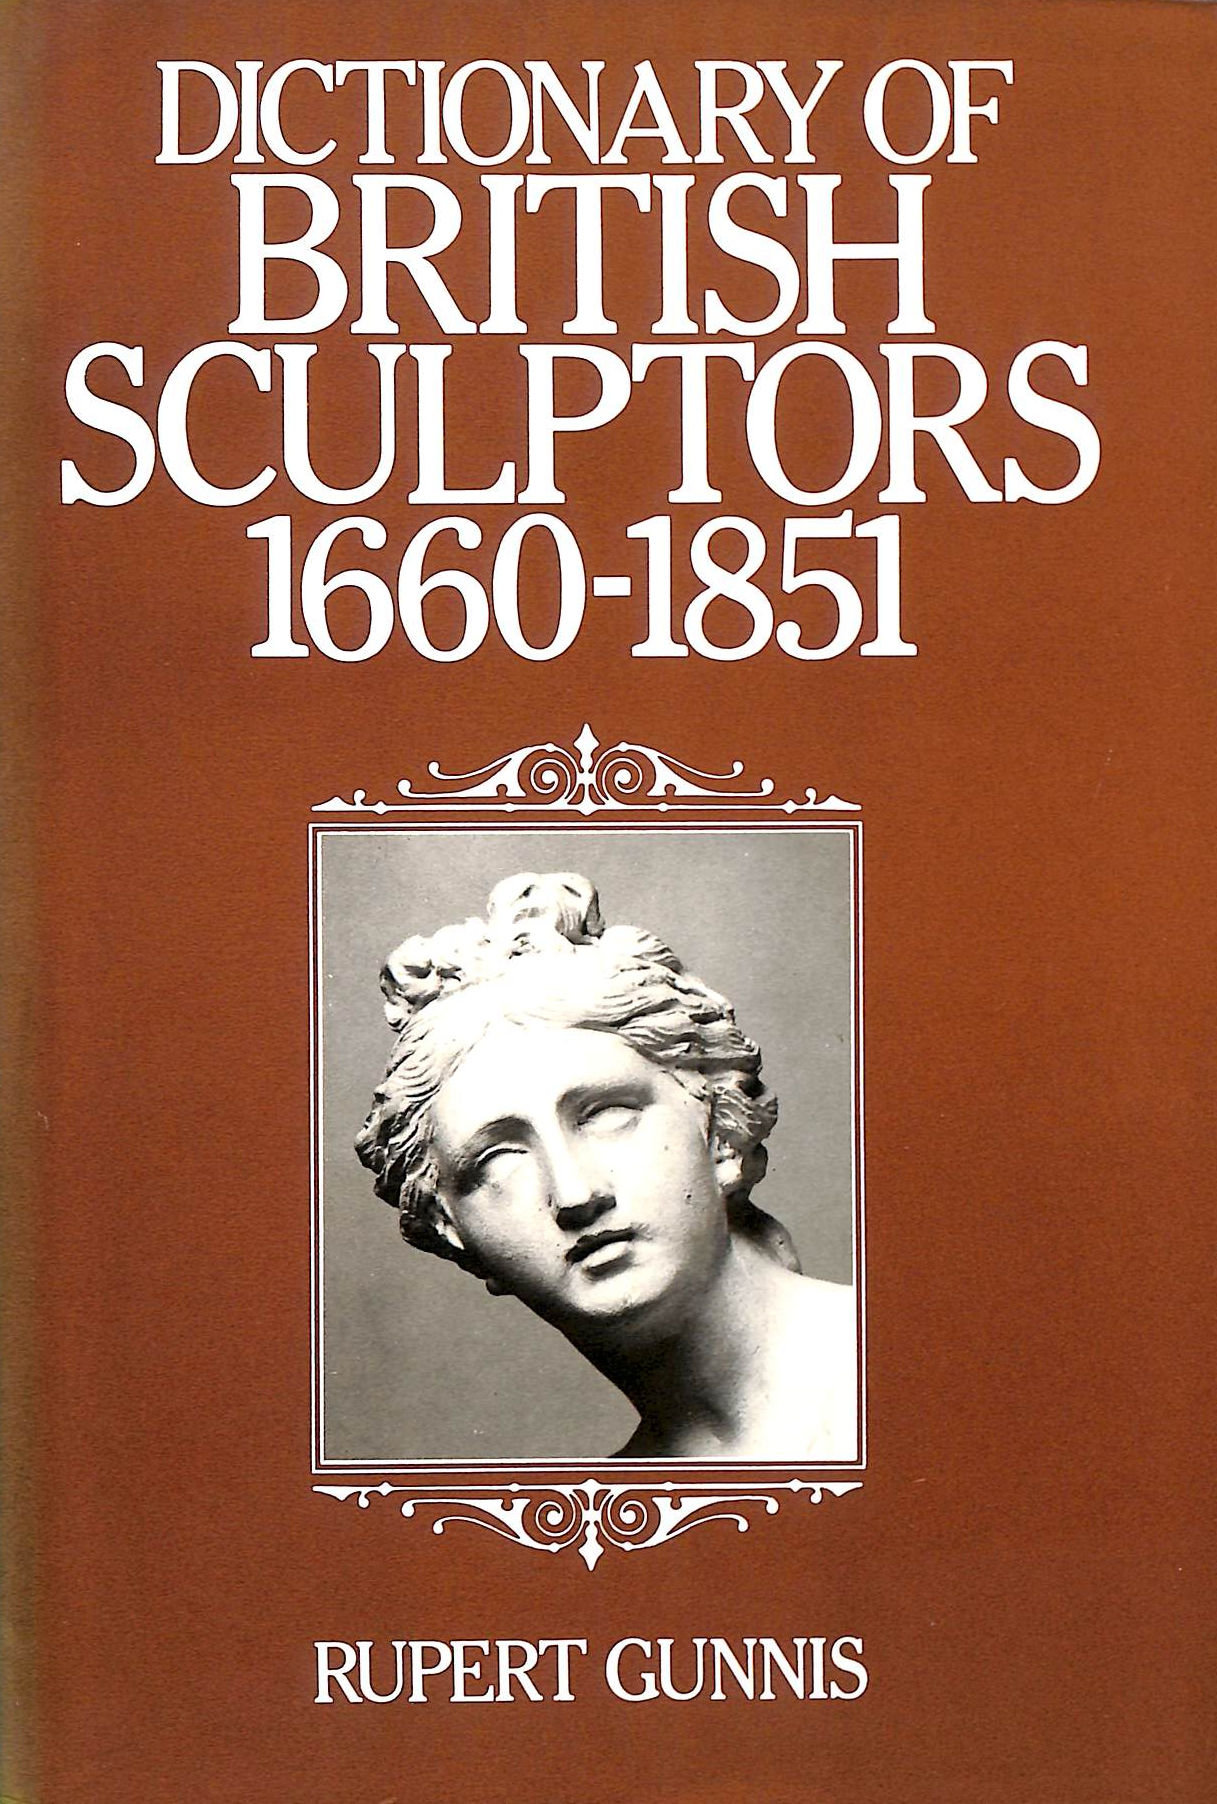 Image for Dictionary Of British Sculptors 1660-1851